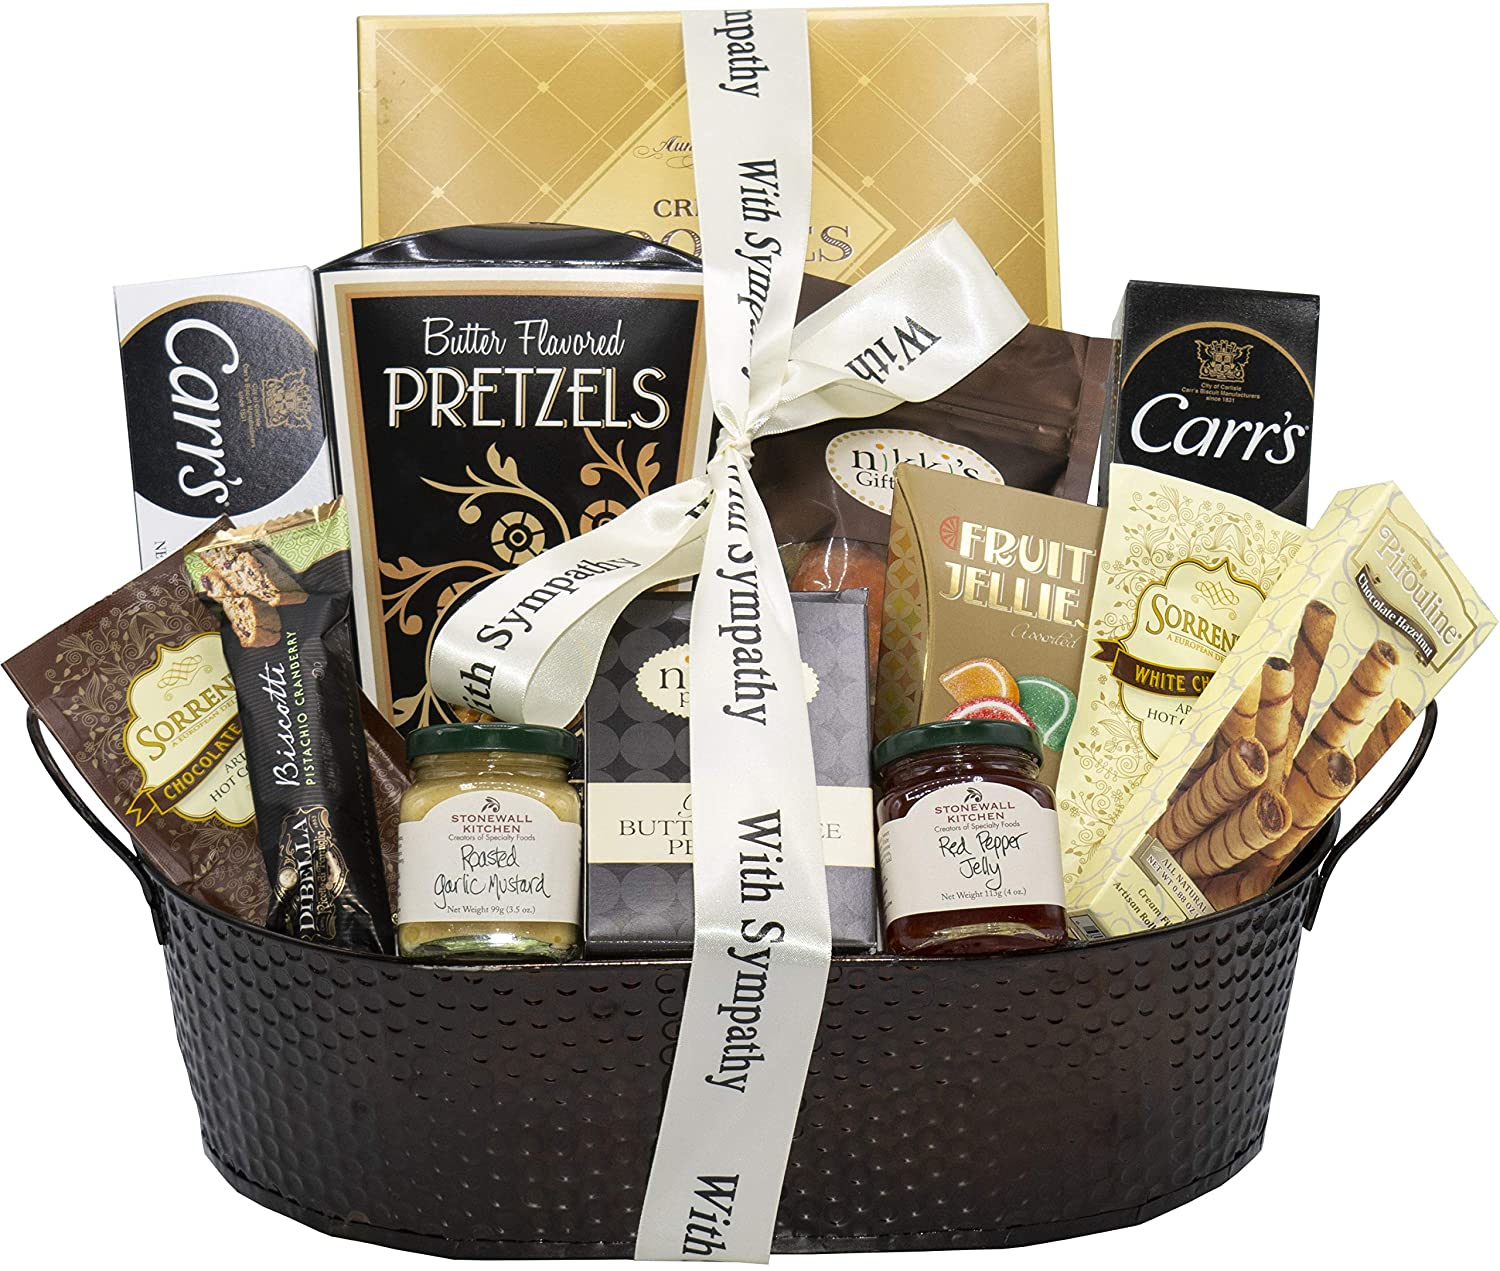 Amazon.com : With Sincere Sympathy Condolence Gift Basket : Gourmet Candy Gifts : Grocery & Gourmet Food